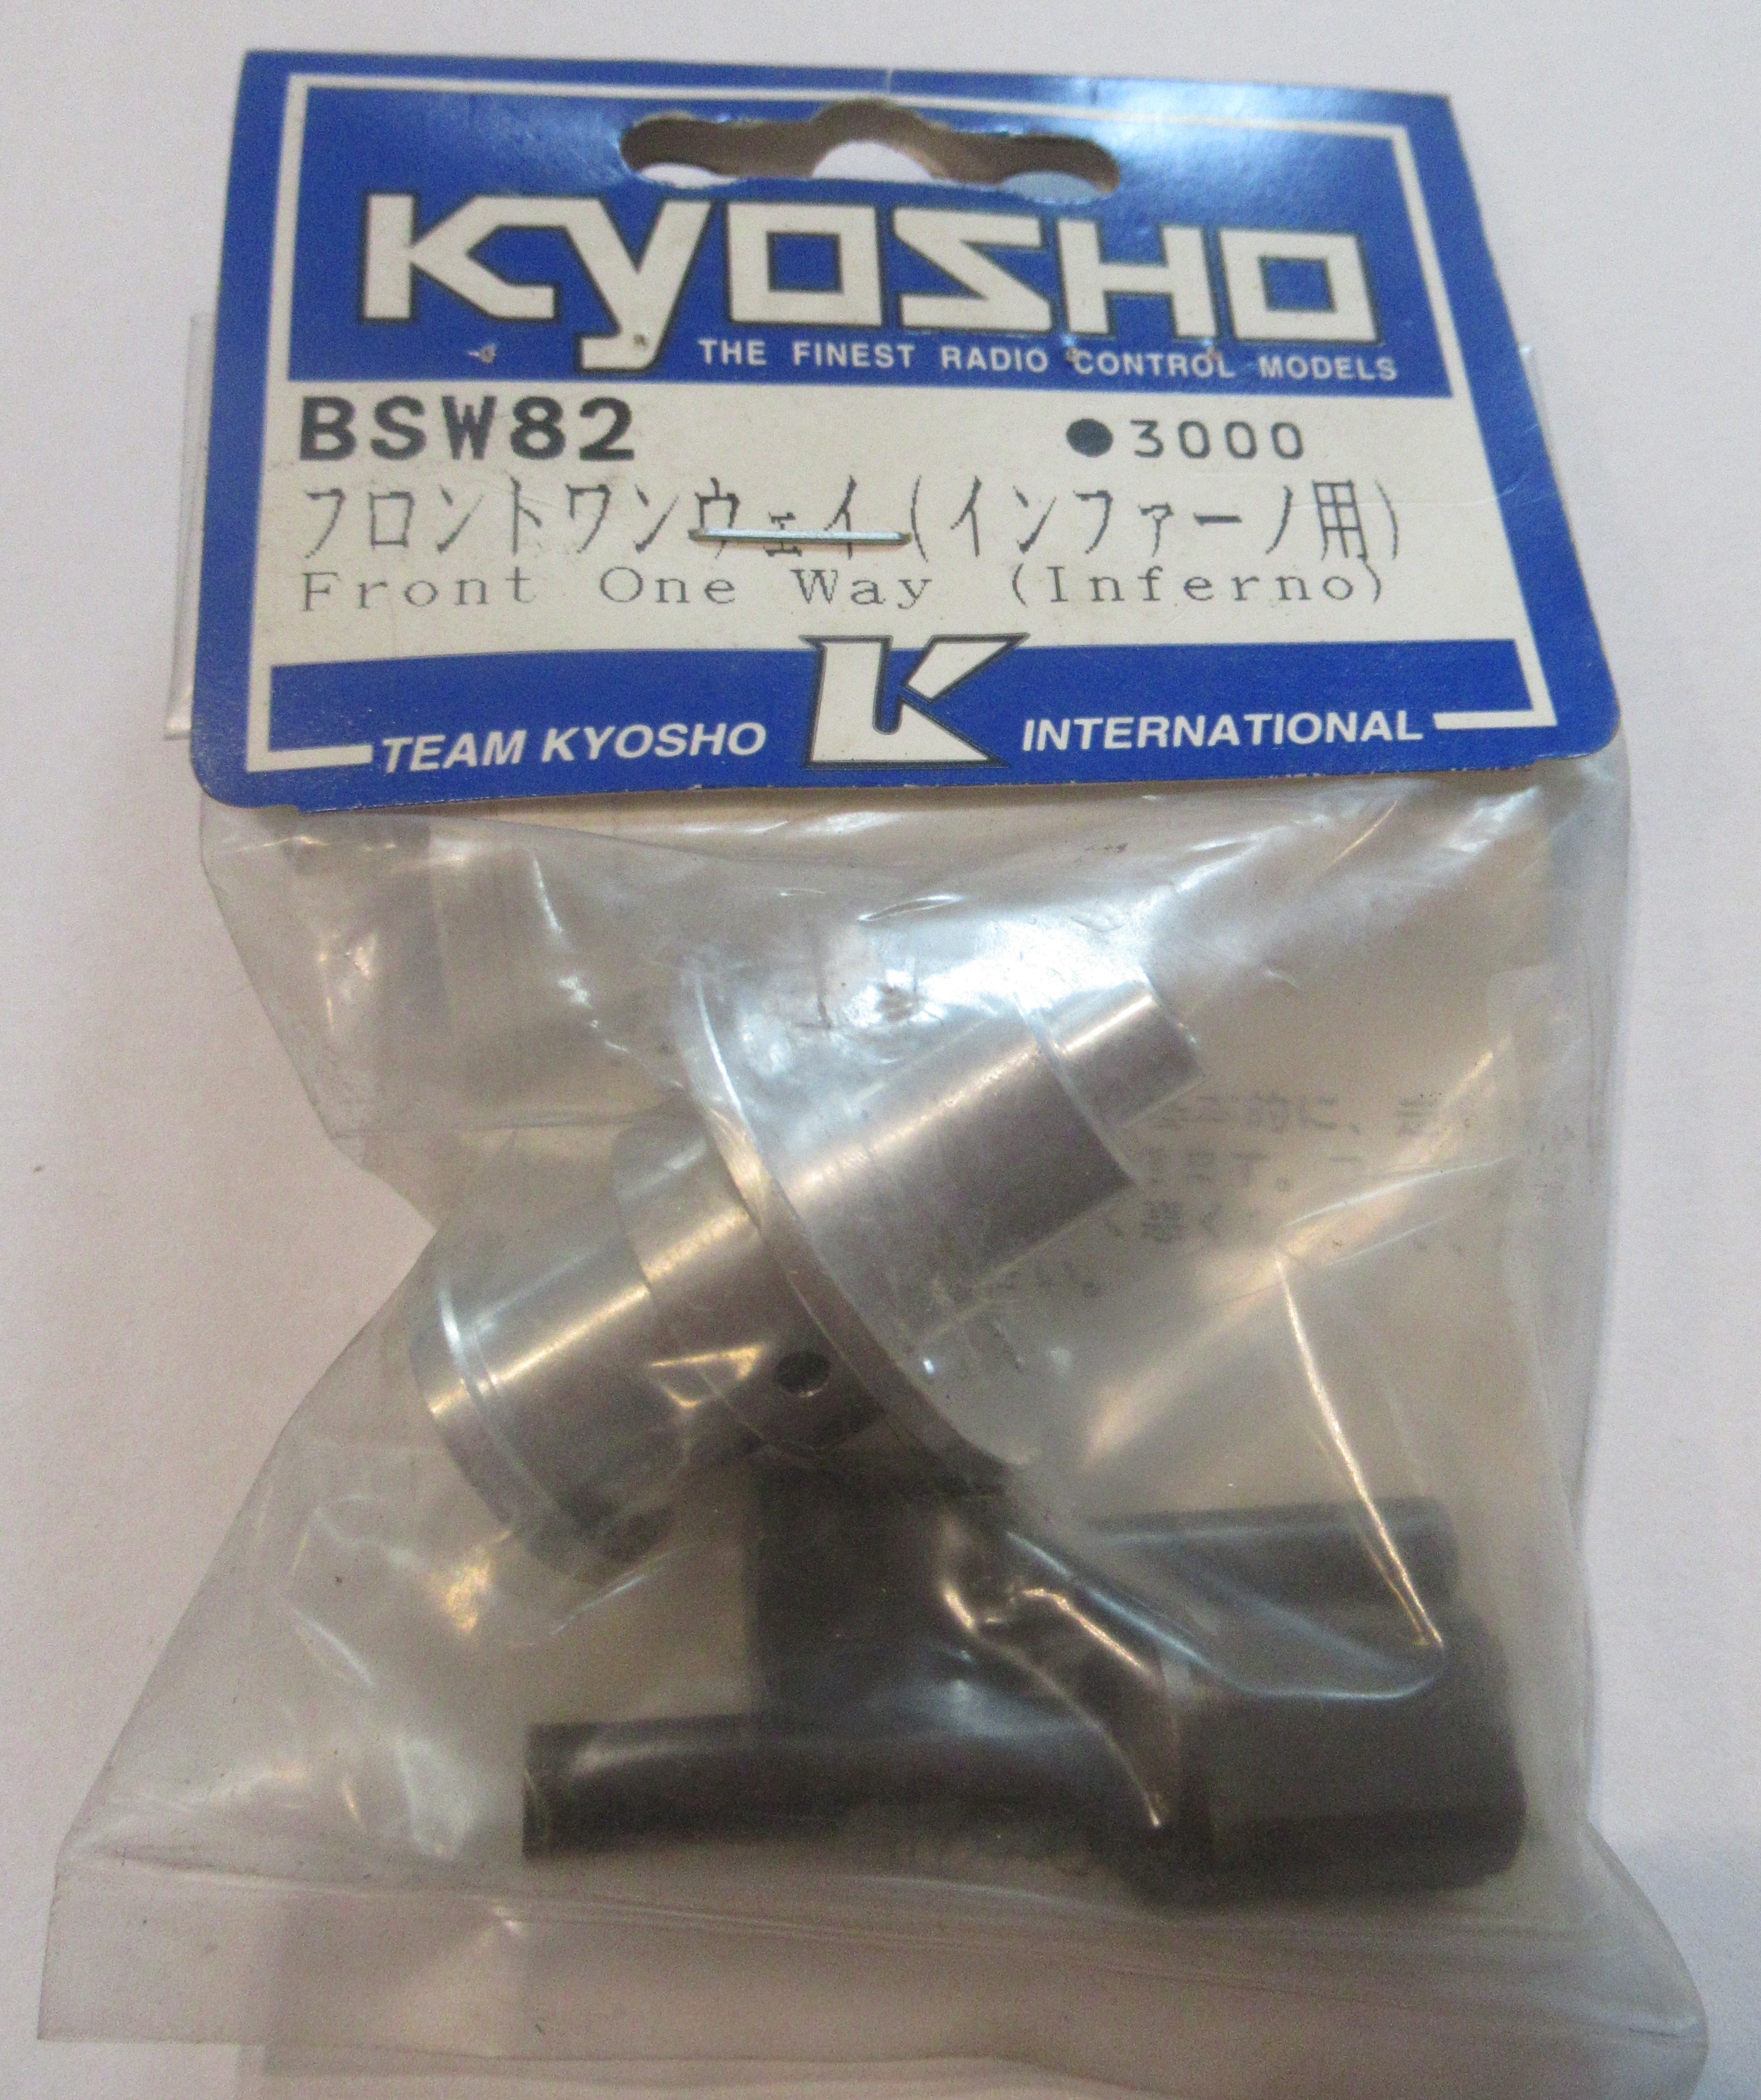 Kyosho BSW82 Front One Way (Inferno)